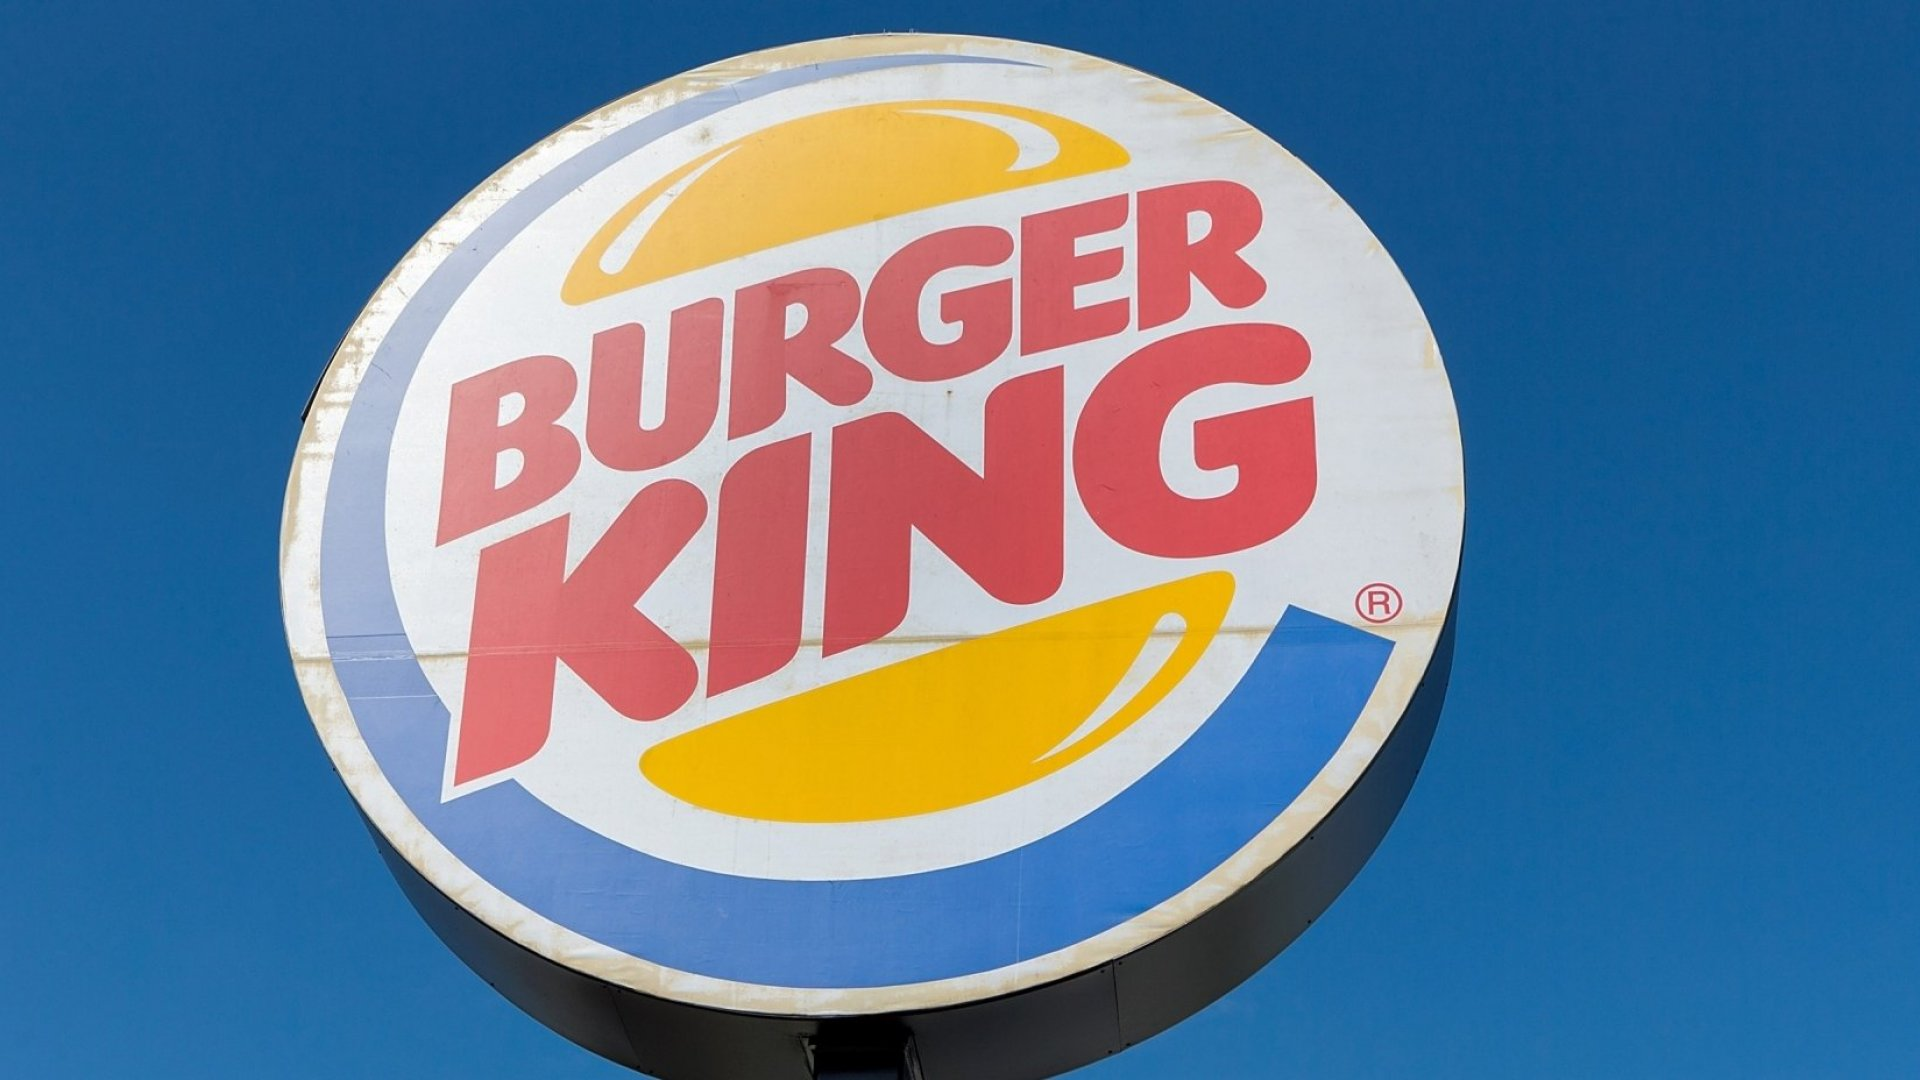 Do You Think You're Smart? Then the CEO of Burger King Definitely Won't Hire You